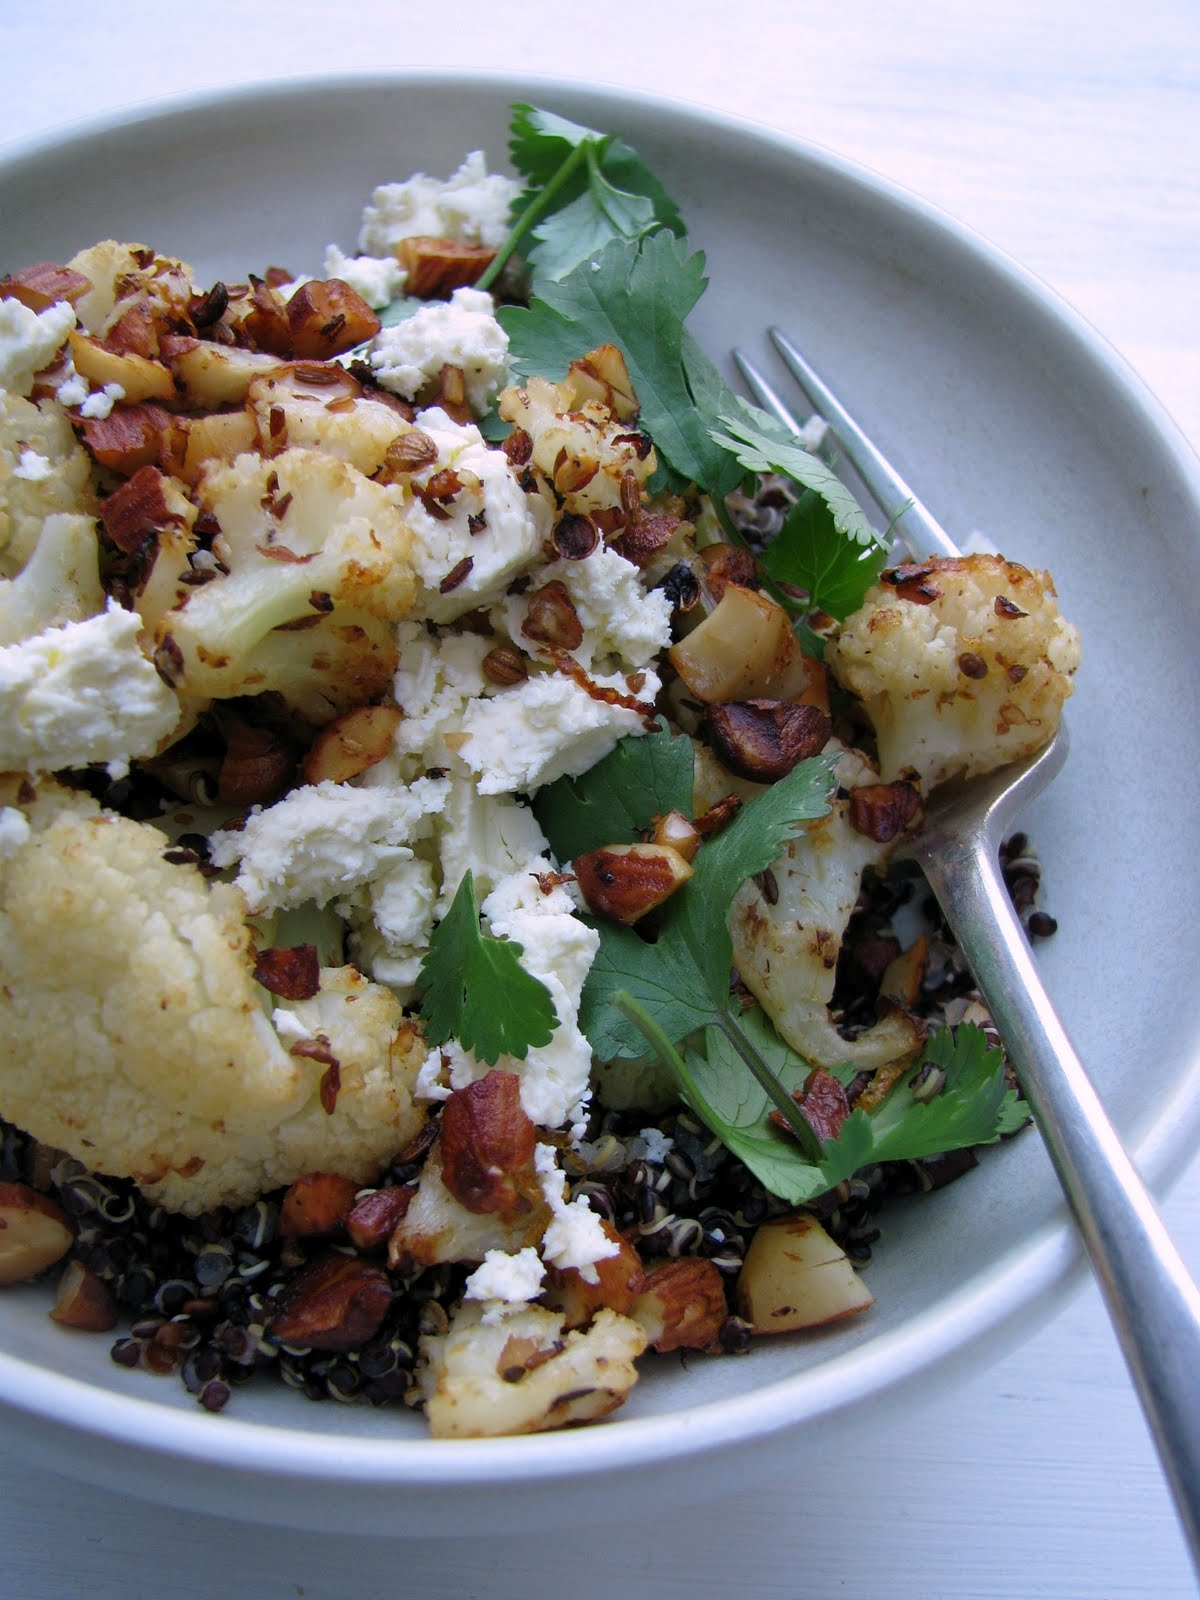 Spice Roasted Cauliflower With Black Quinoa Feta And Almond Recipe My Darling Lemon Thyme